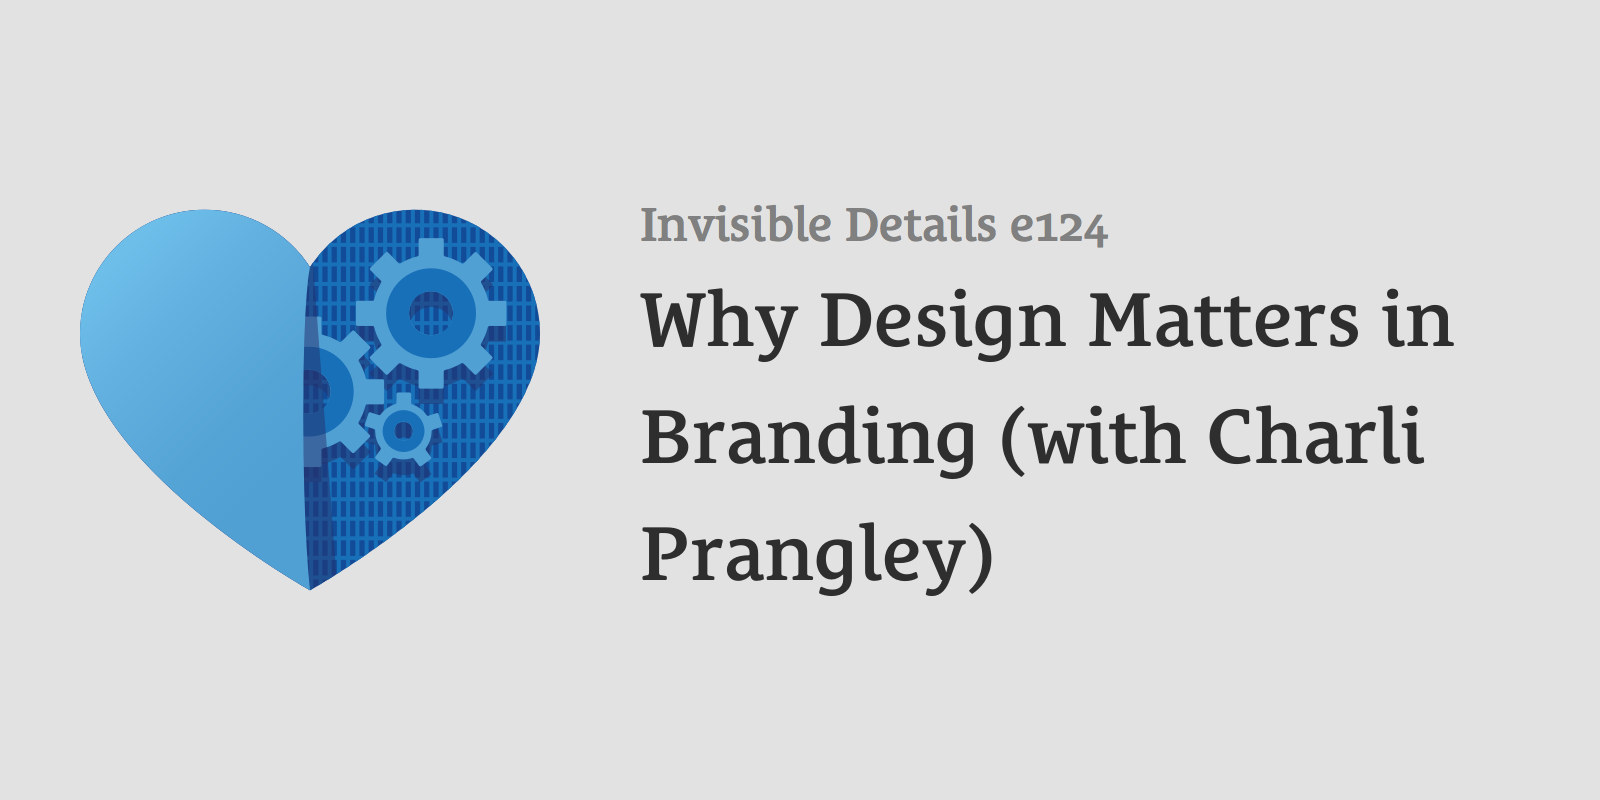 Why Design Matters in Branding (with Charli Prangley)